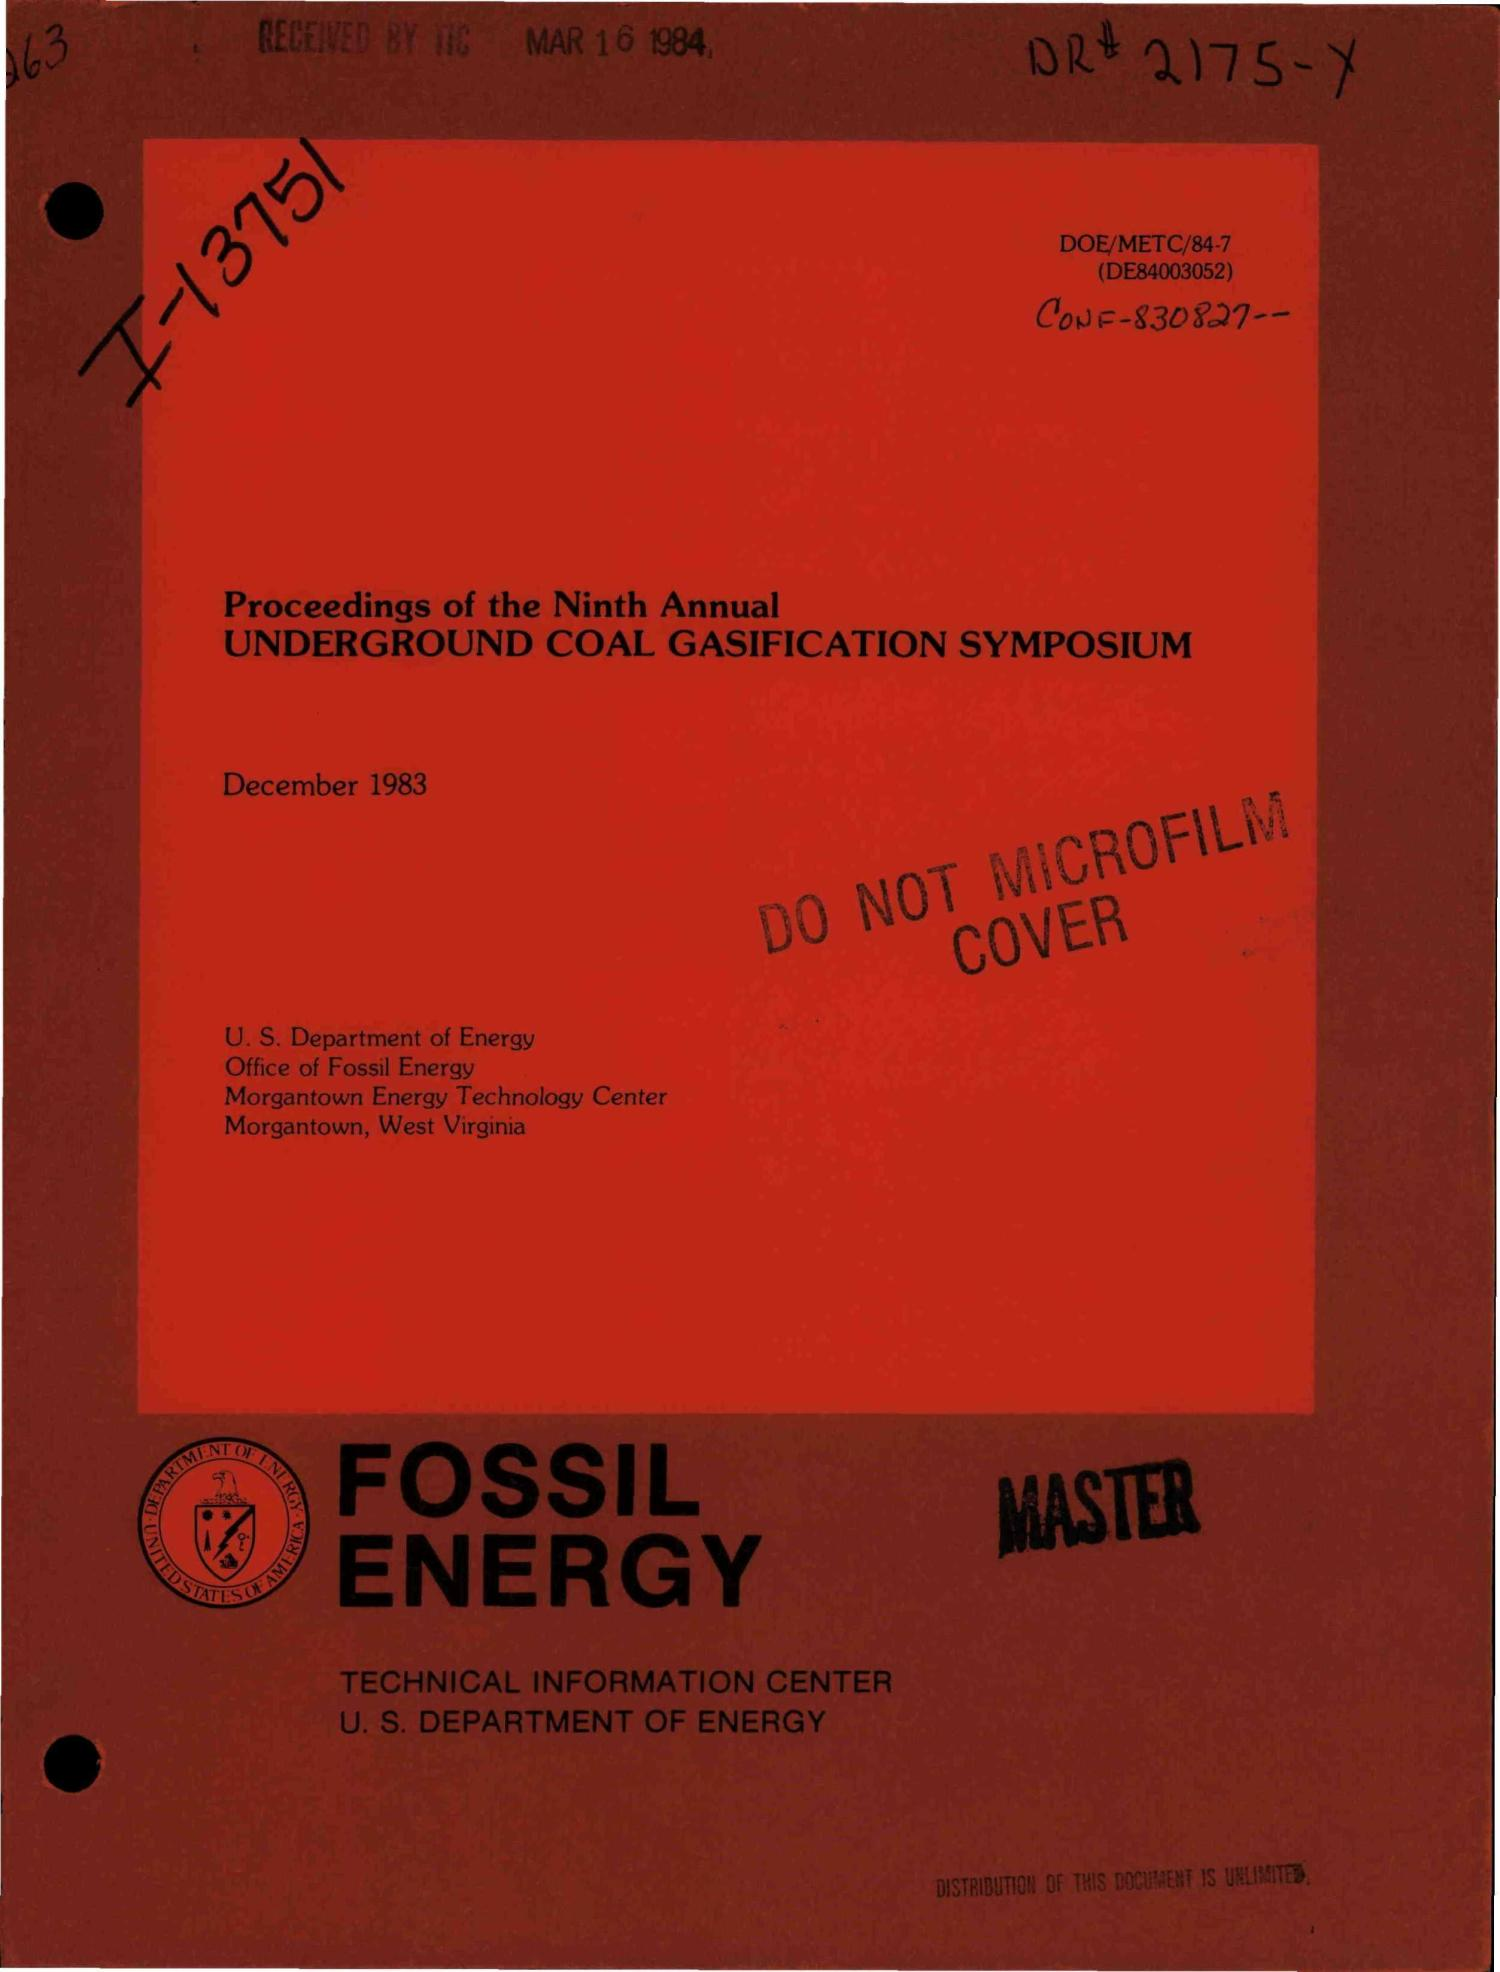 Proceedings of the ninth annual underground coal gasification symposium                                                                                                      [Sequence #]: 1 of 586